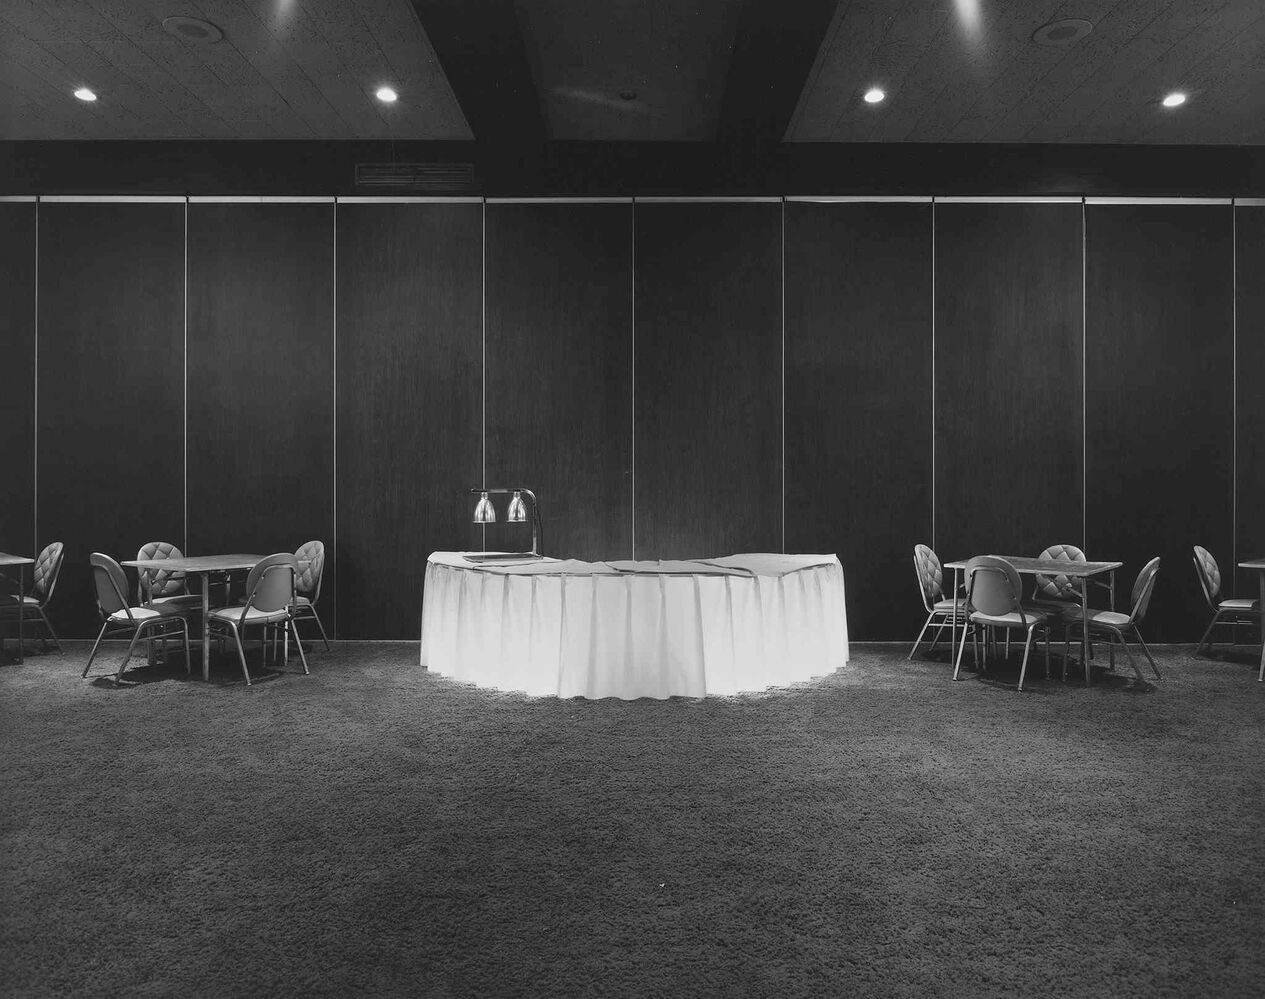 Lynne Cohen, Banquet hall, Howard Johnson's, Atlantic City, New Jersey, 1976 (printed 1986), gelatin silver print, 18.9 x 24 cm. National Gallery of Canada, Ottawa  (Photo © NGC)